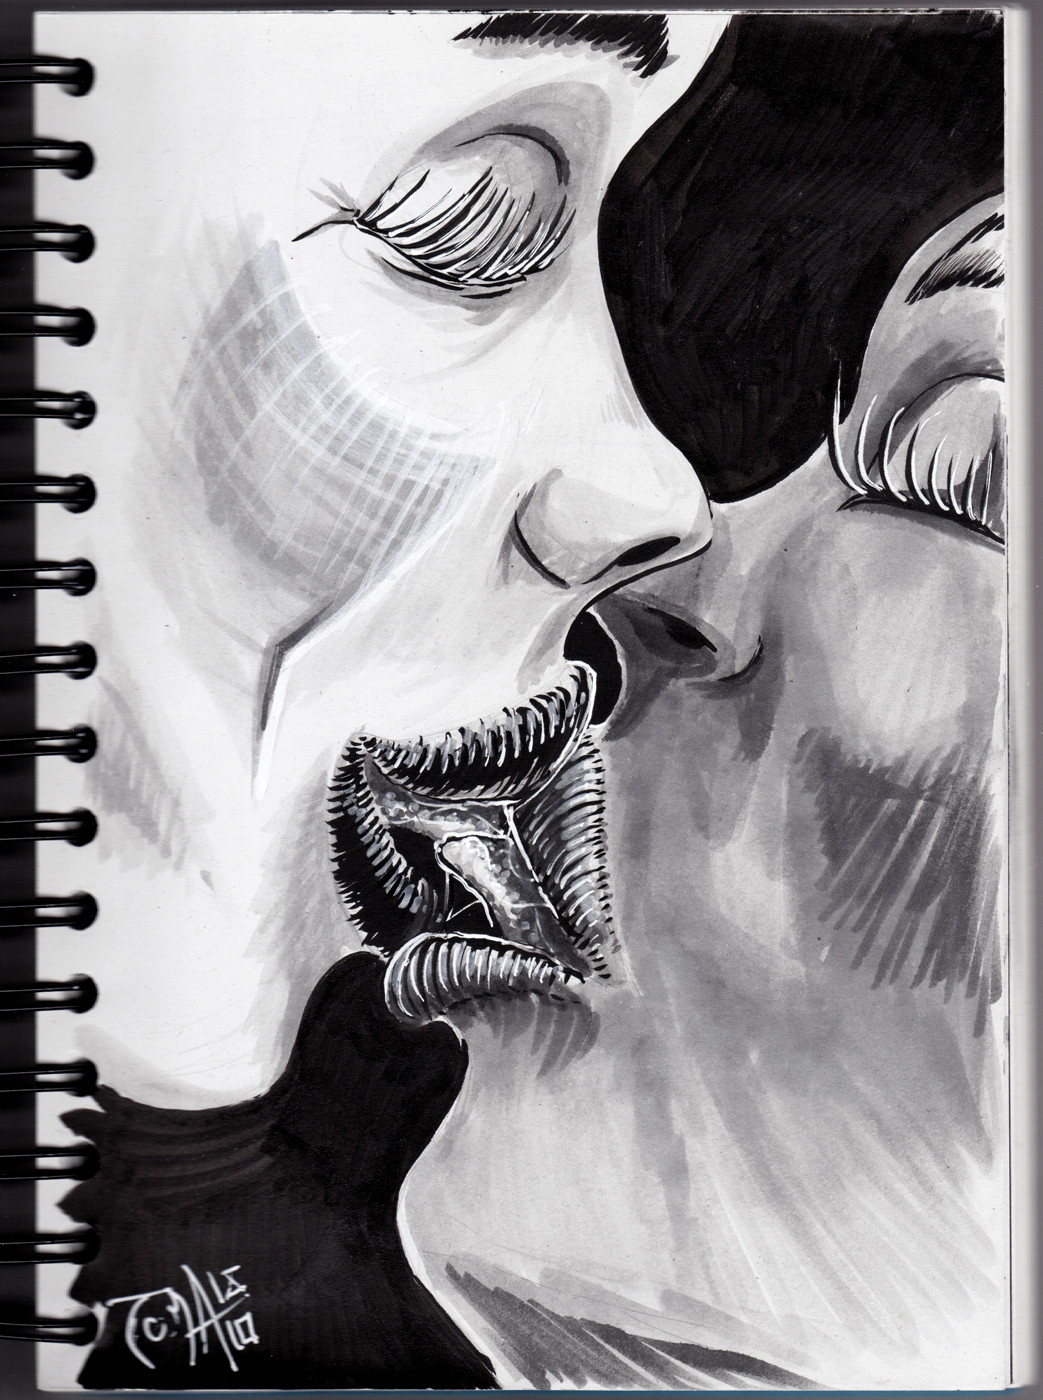 6.Drooling